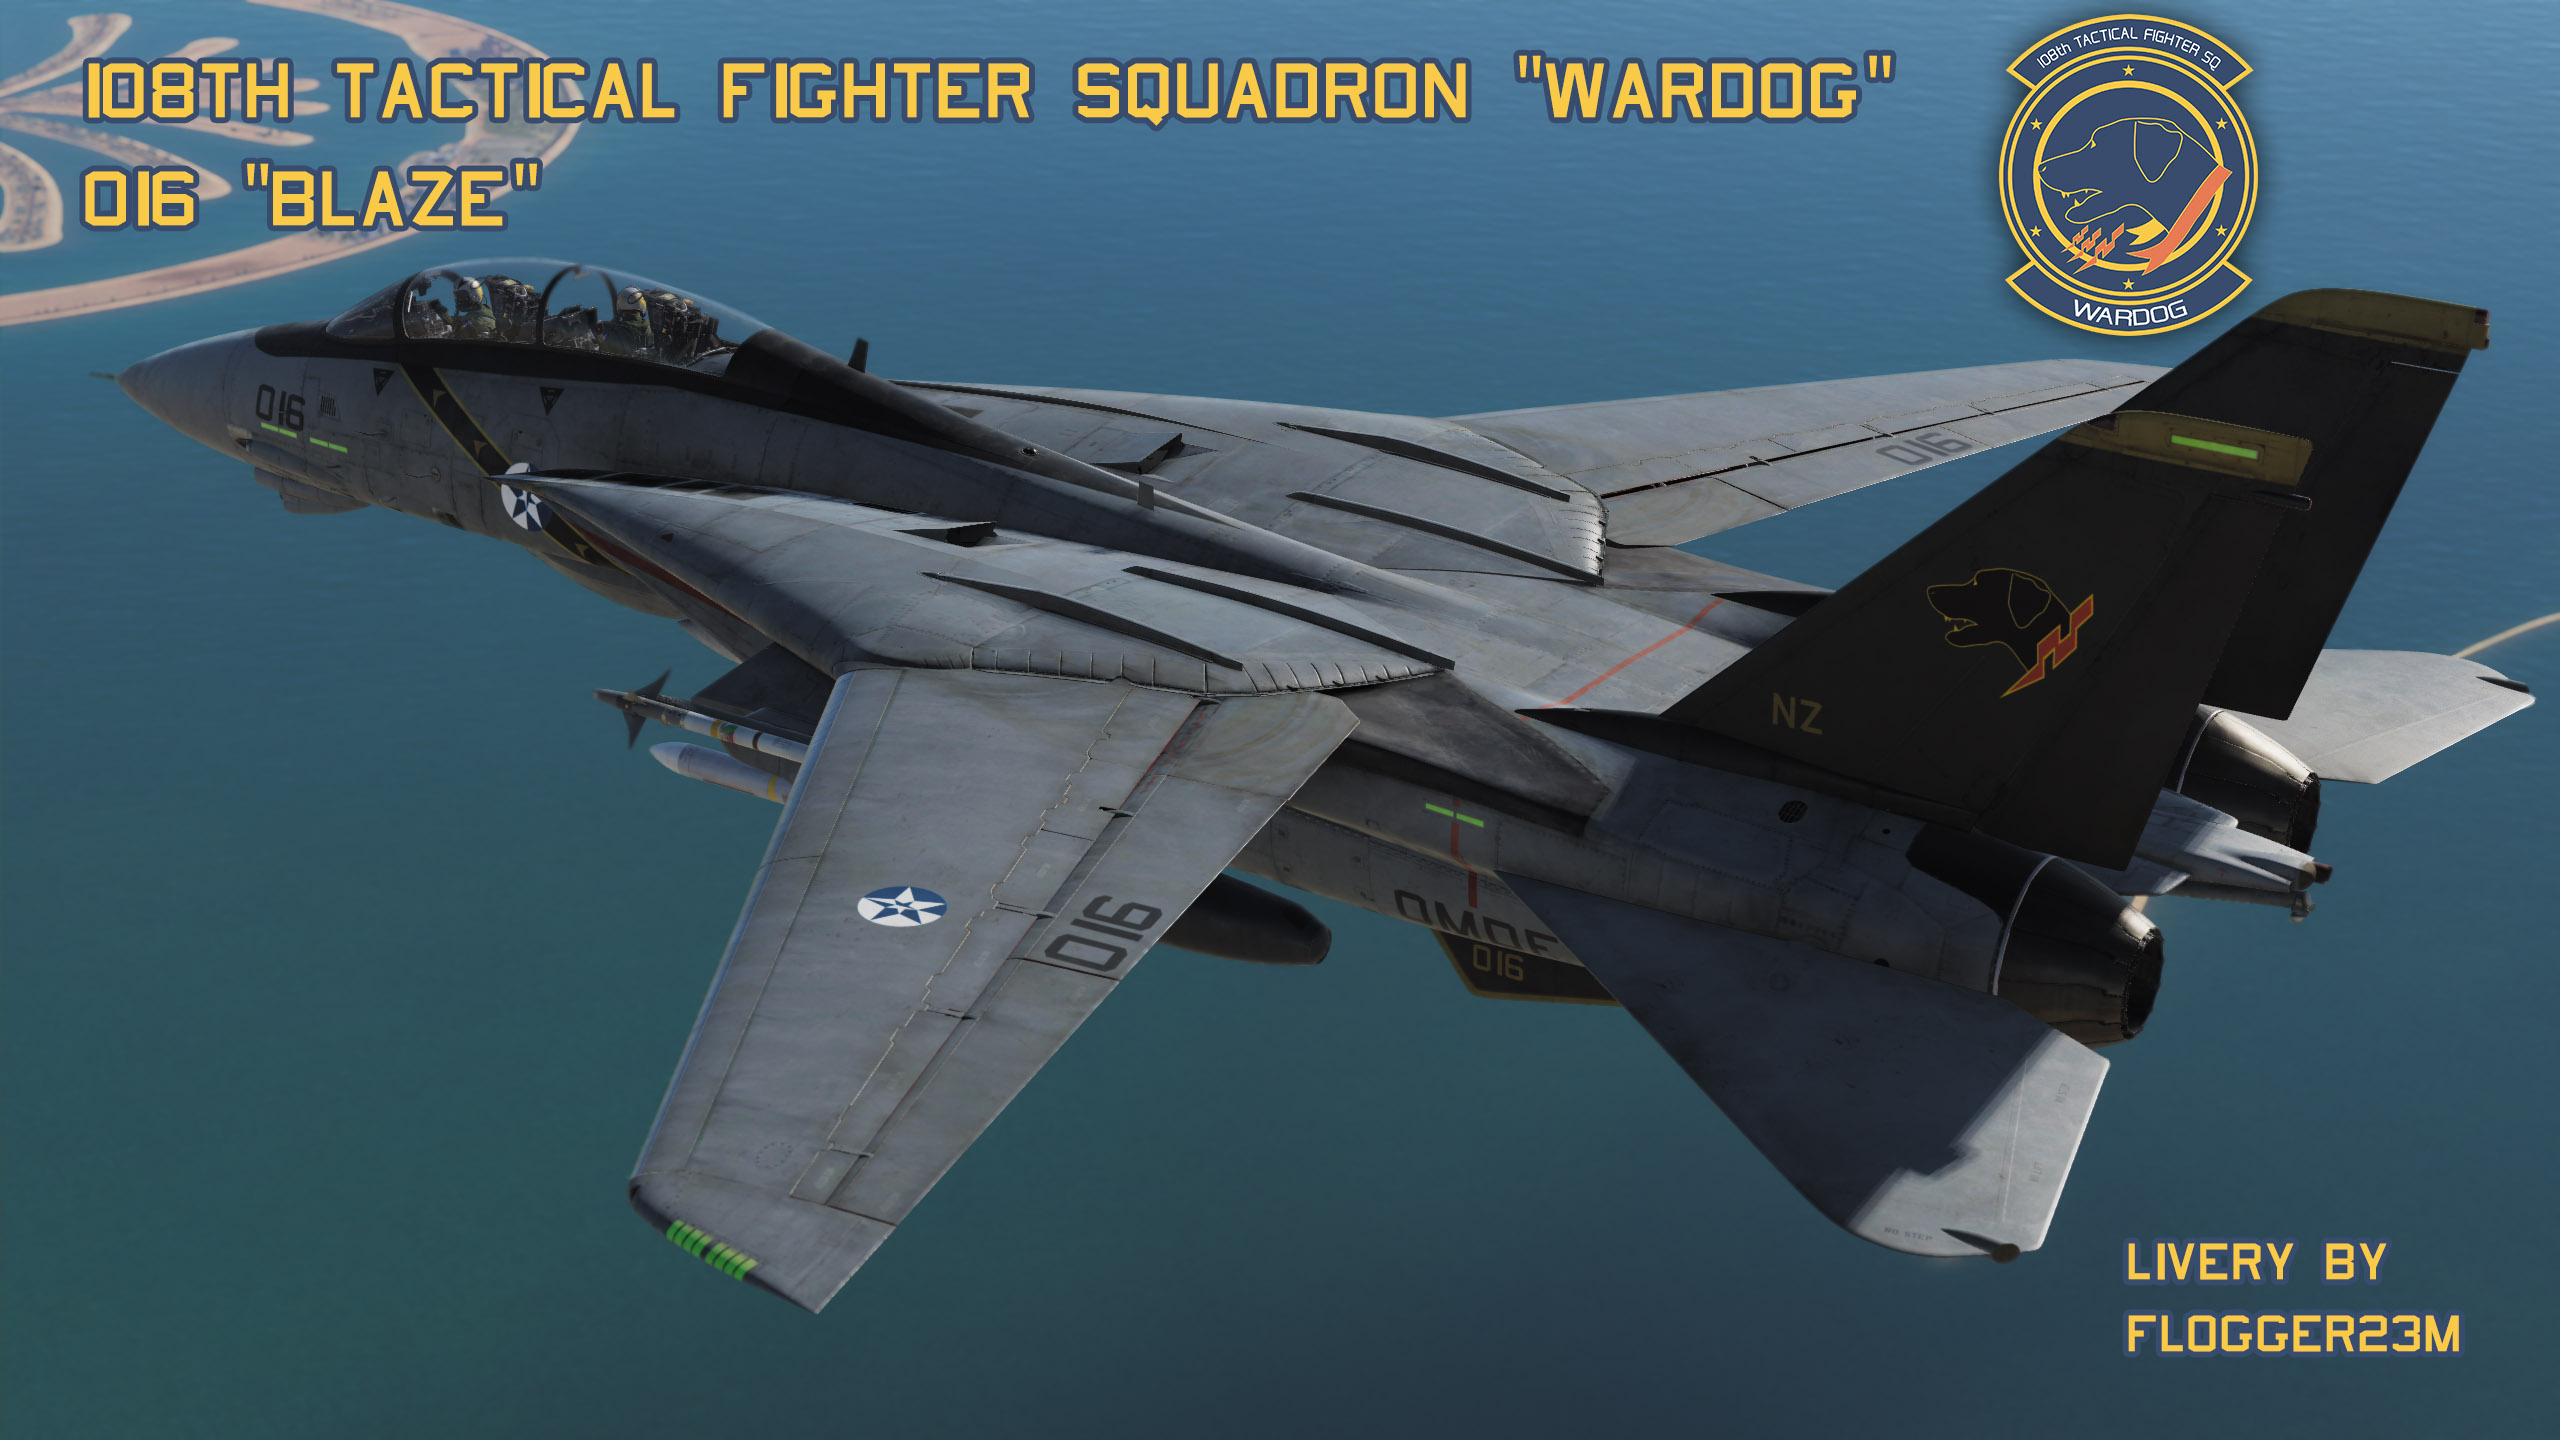 Wardog 016 Blaze (F-14A & F-14B) Version 2 - Livery for F-14B - By Flogger23m